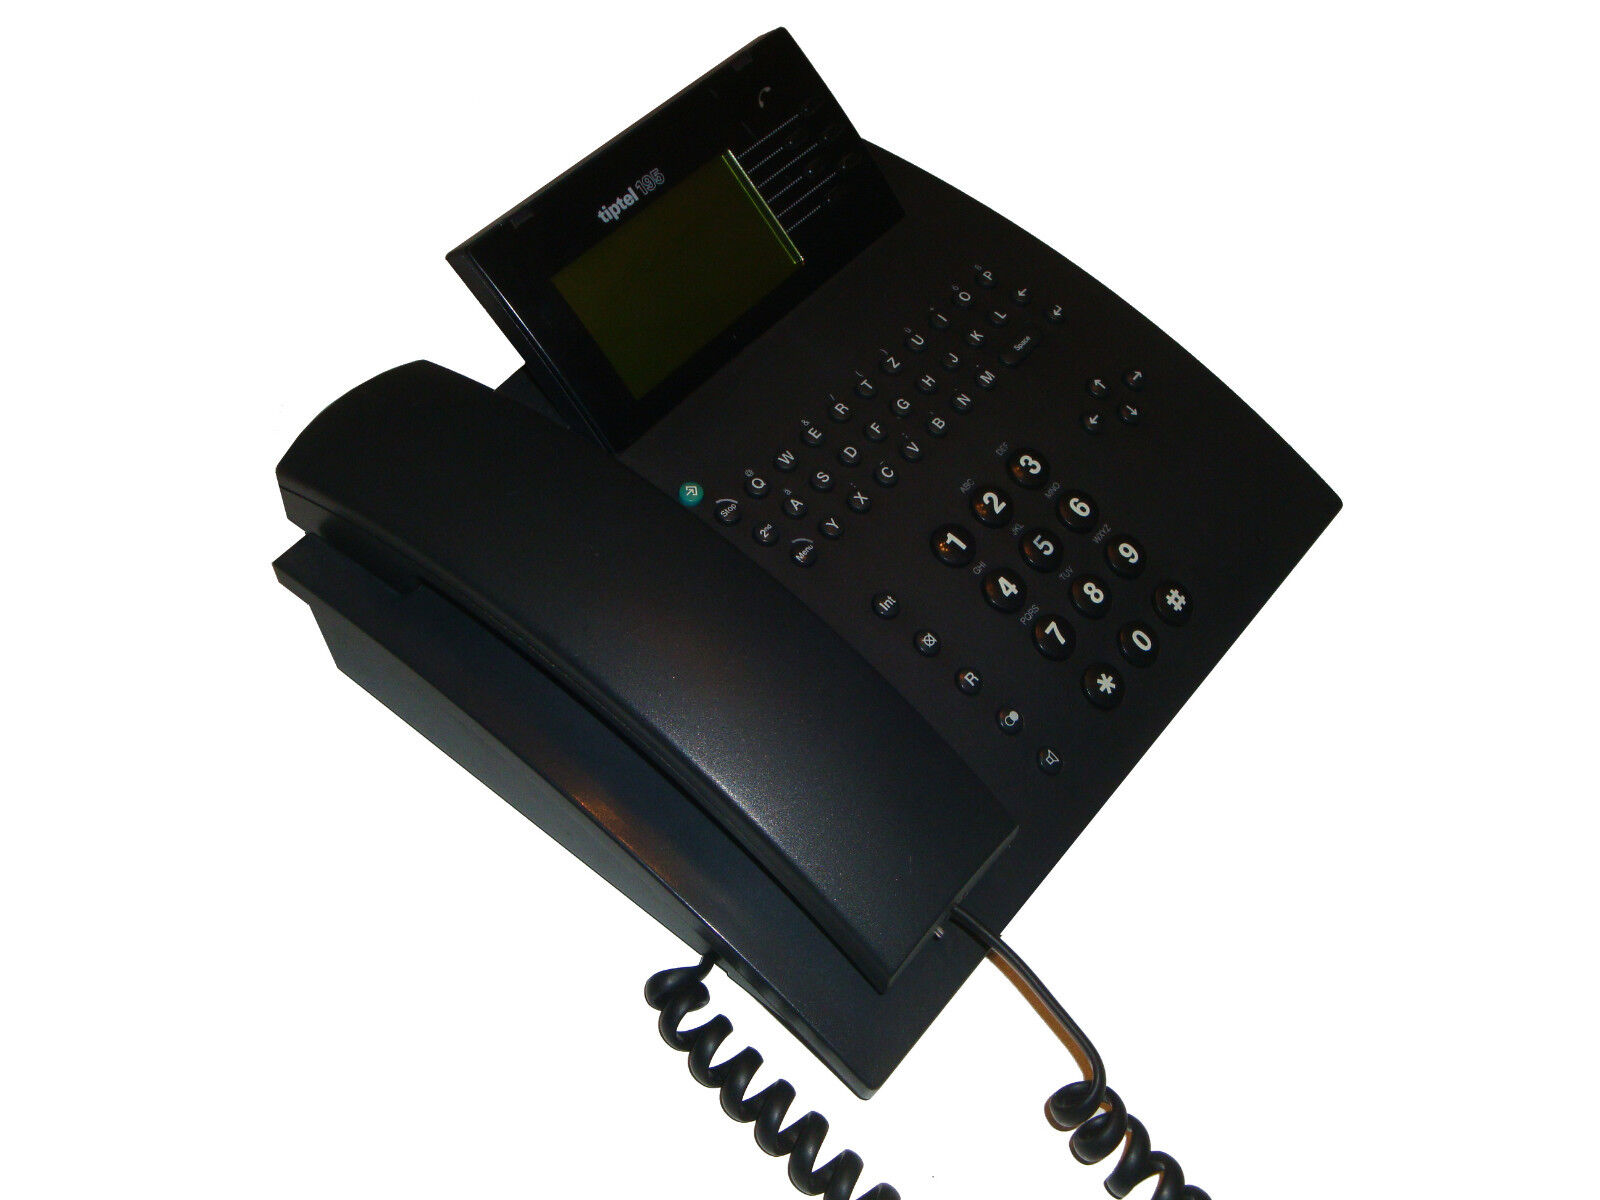 Tiptel 195 Telefono ISDN Comfort con anrufbeanworter COME NUOVO 57